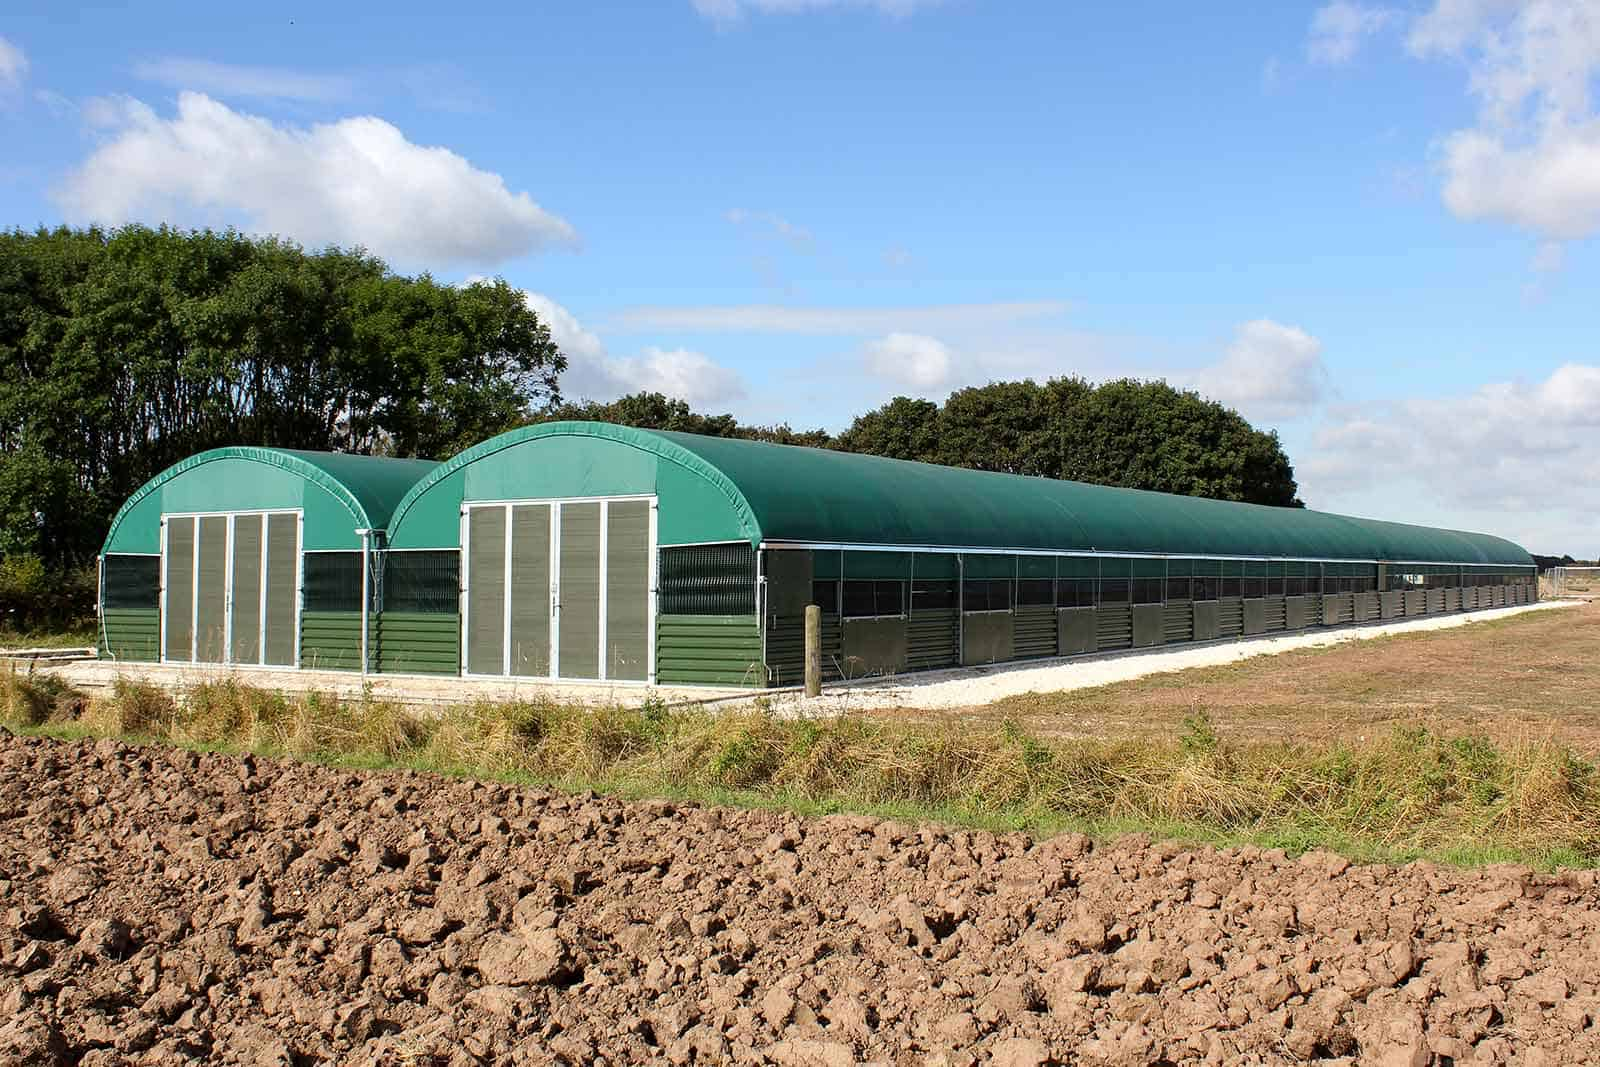 Modular PVC covered polytunnel buildings by McGregor Polytunnels - bespoke design and build